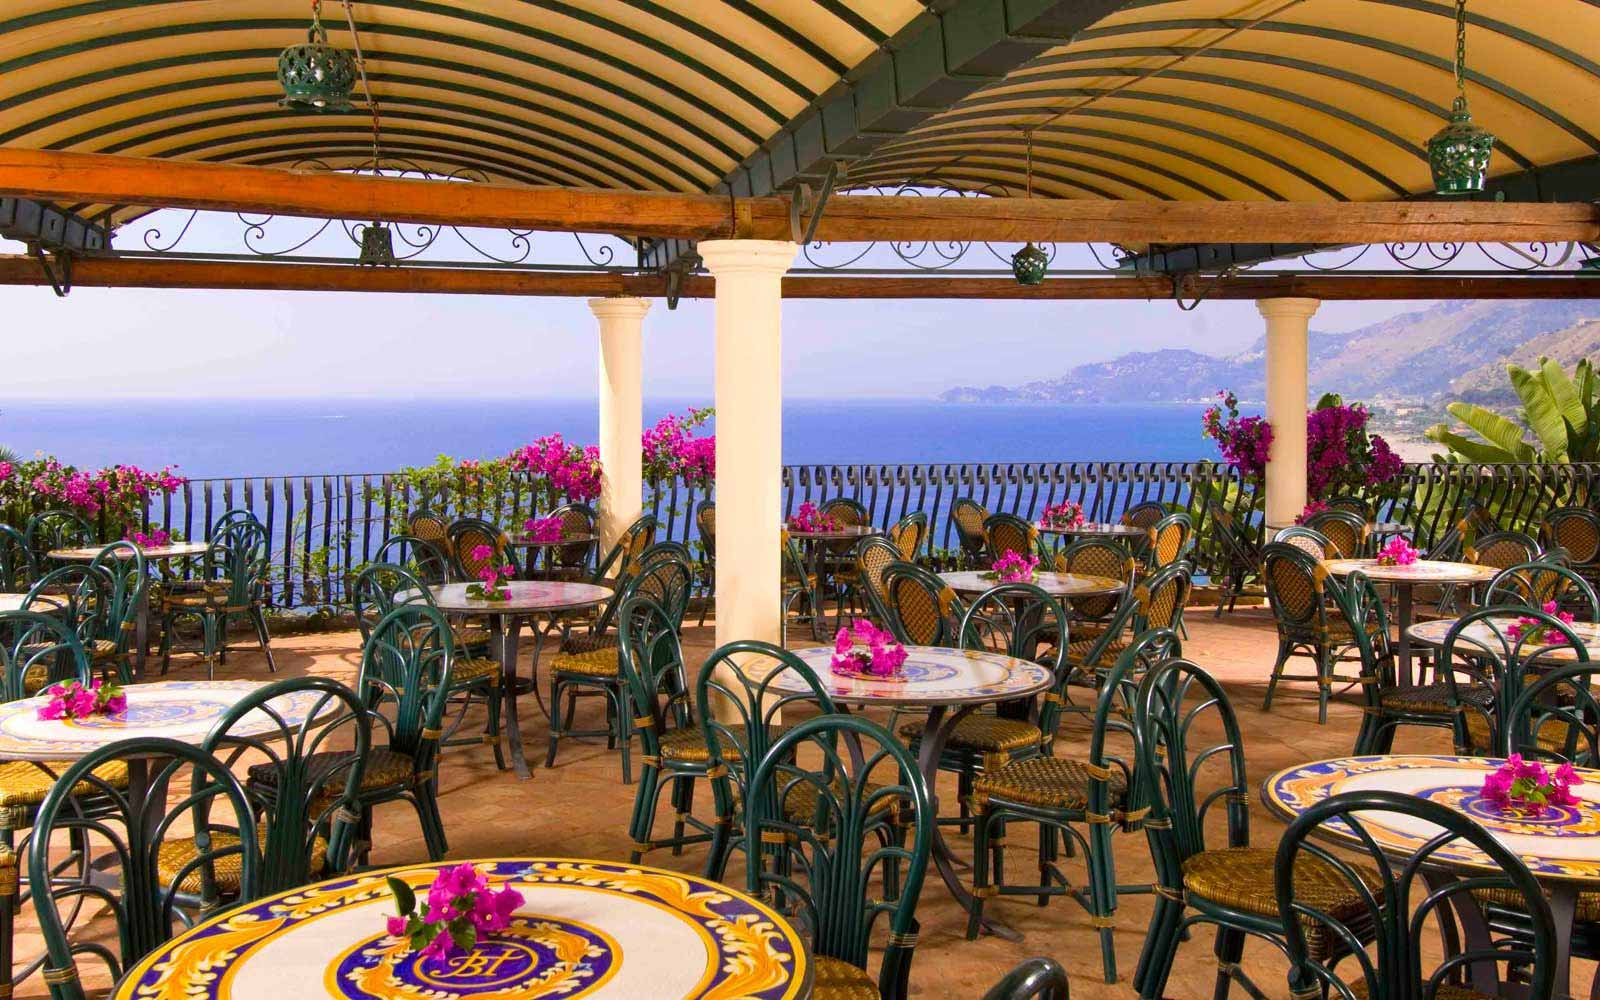 Terrace restaurant at Hotel Baia Taormina